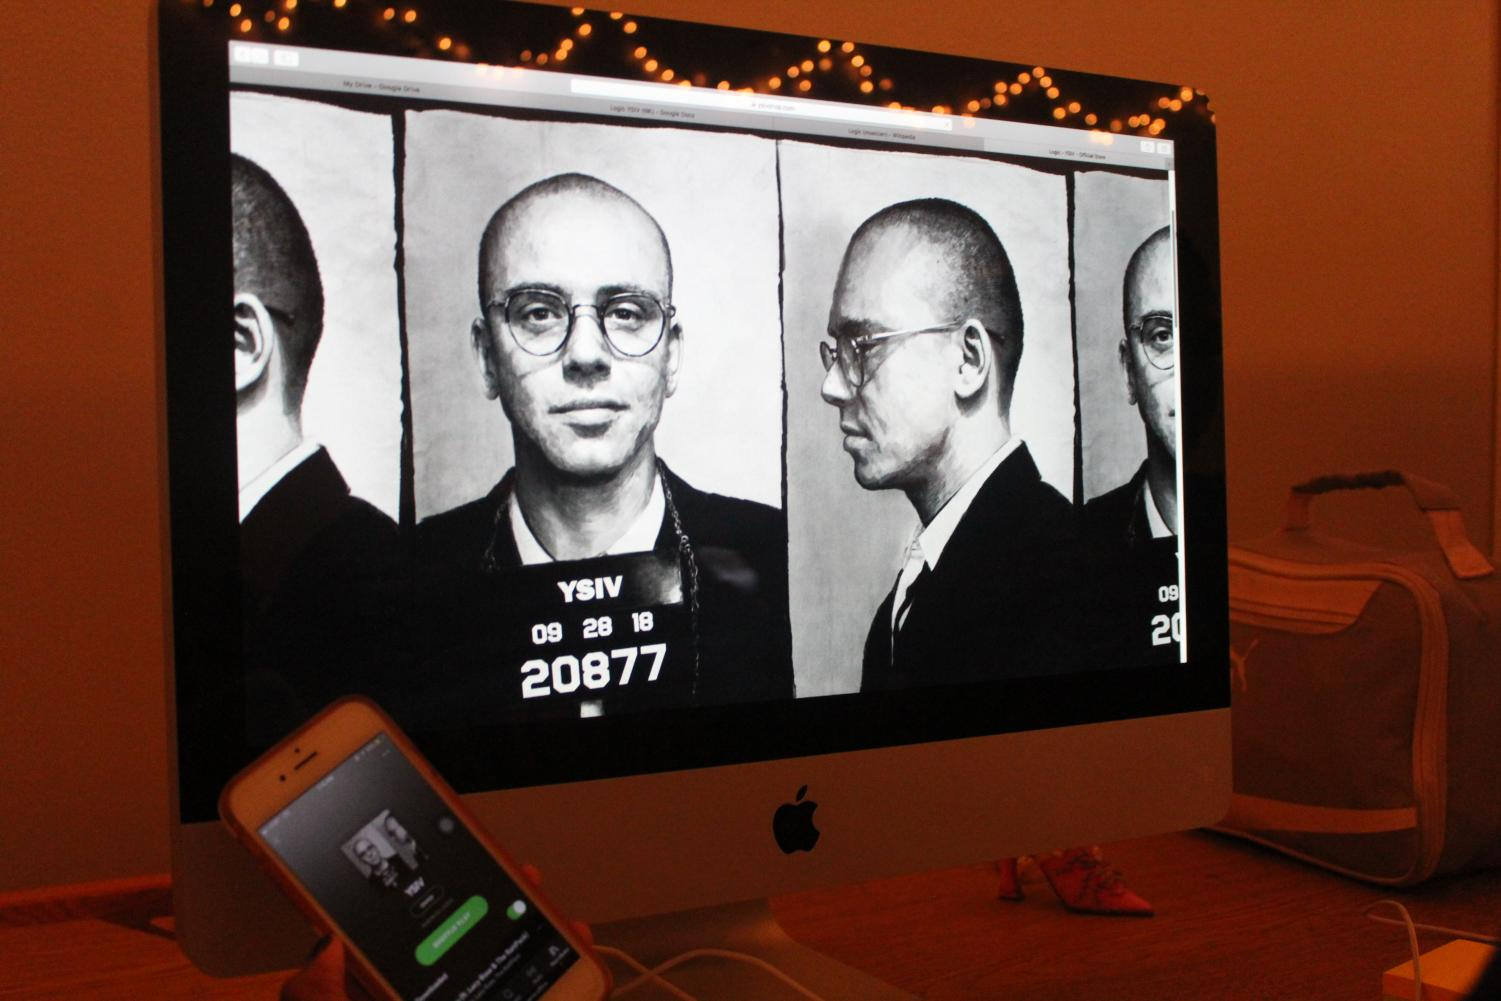 YSIV hit Spotify and Apple Music on September 28, 2018. With obvious excitement for Logic's new releases, fans quickly download the album, along with purchasing their YSIV merchandise to represent their favorite artist.